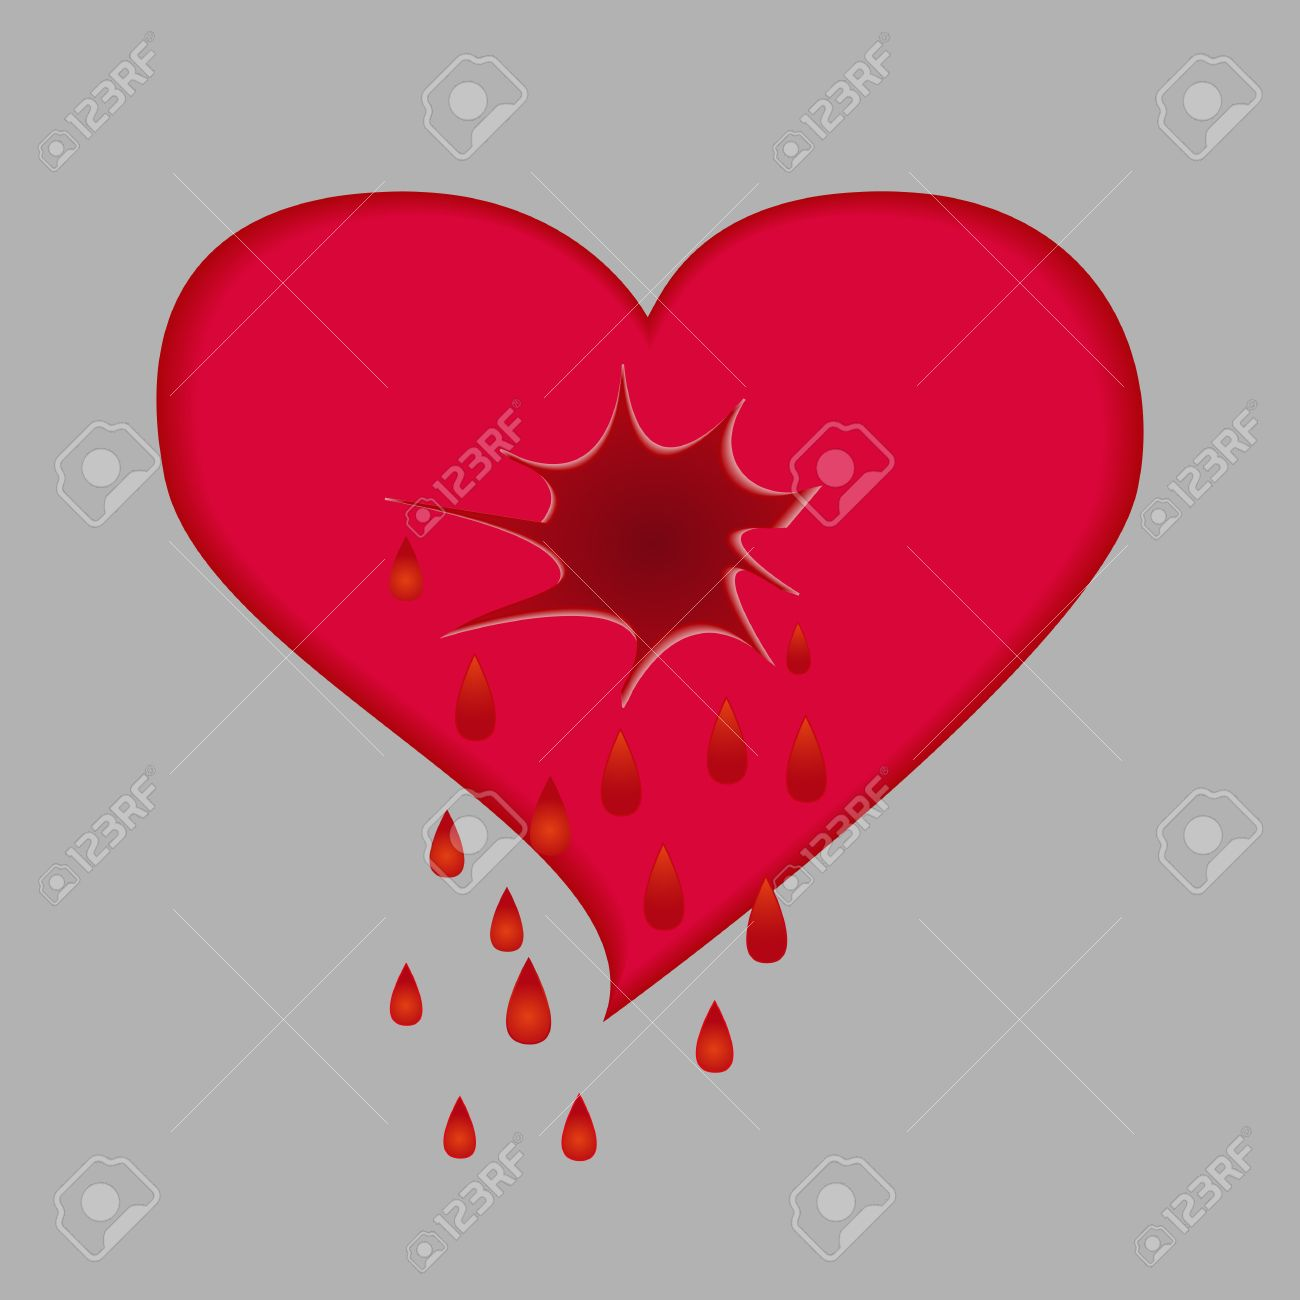 A Broken Heart Is Crying Tears Of Blood Royalty Free Cliparts